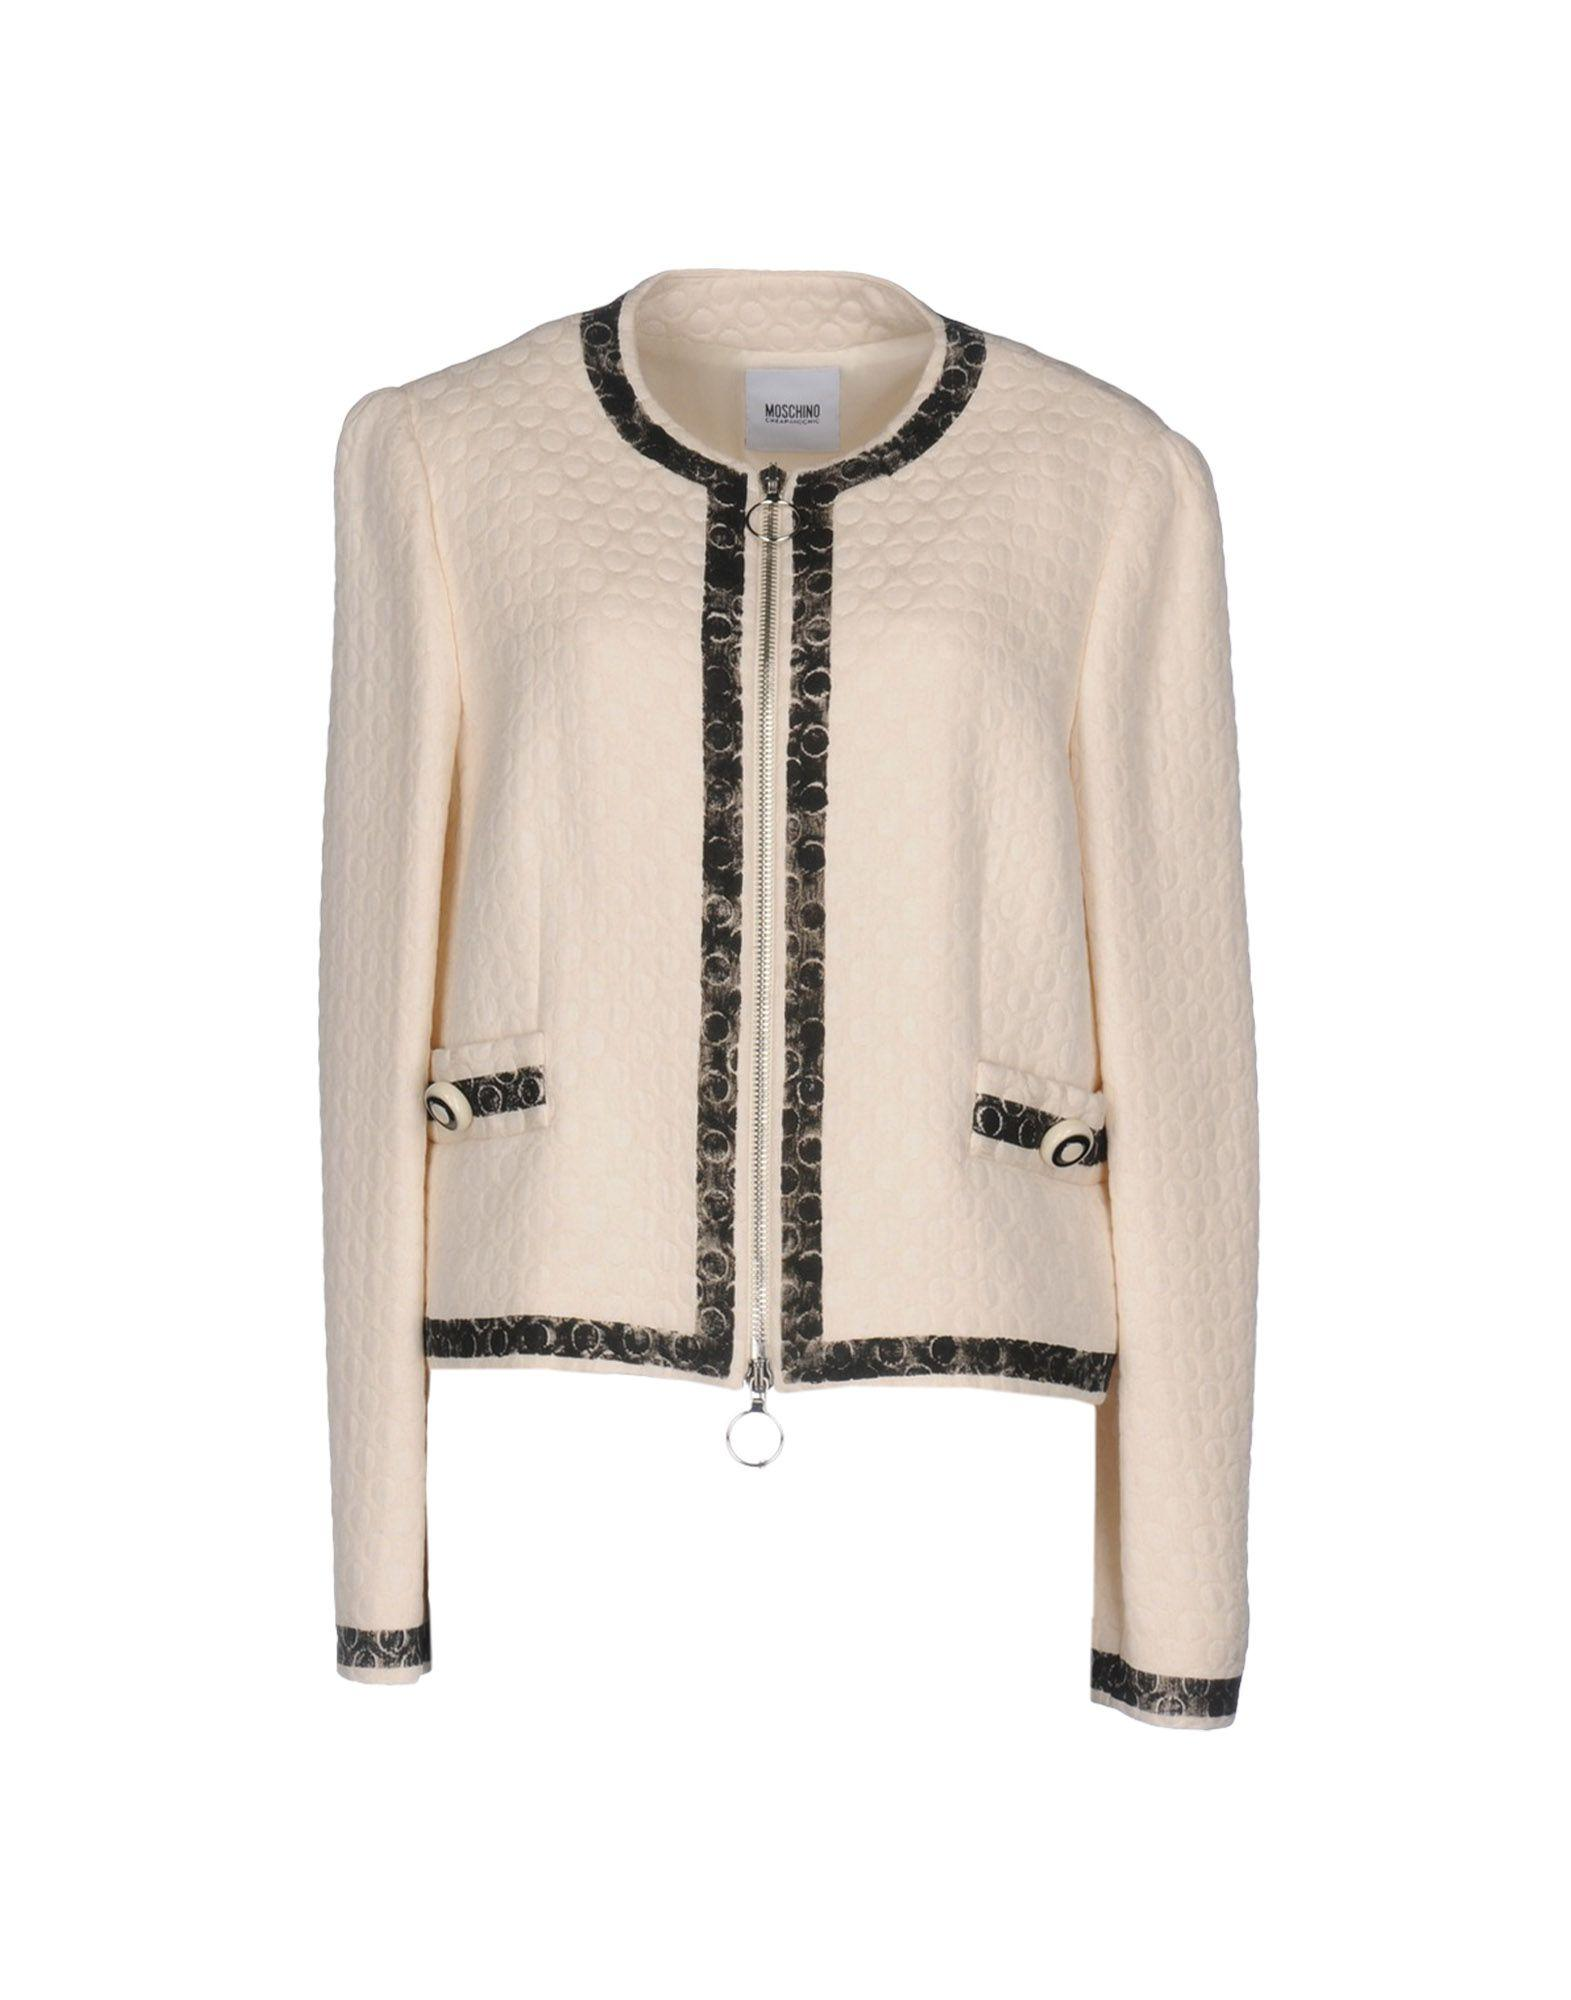 Moschino Cheap And Chic Blazer In Ivory